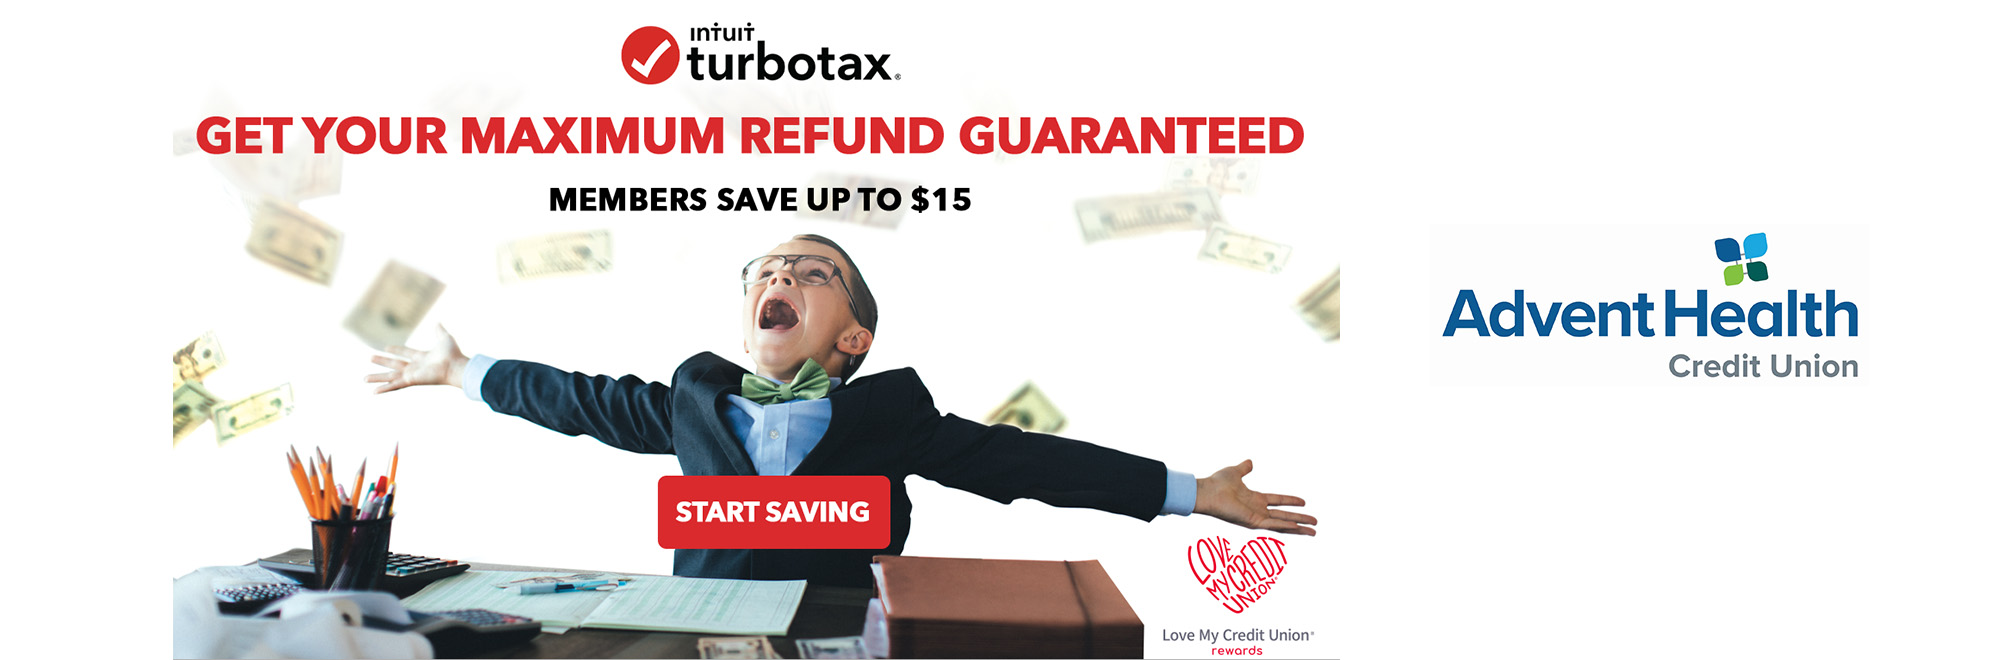 Members Save Up to $15 with Turbotax. Get your maximum refund guaranteed.